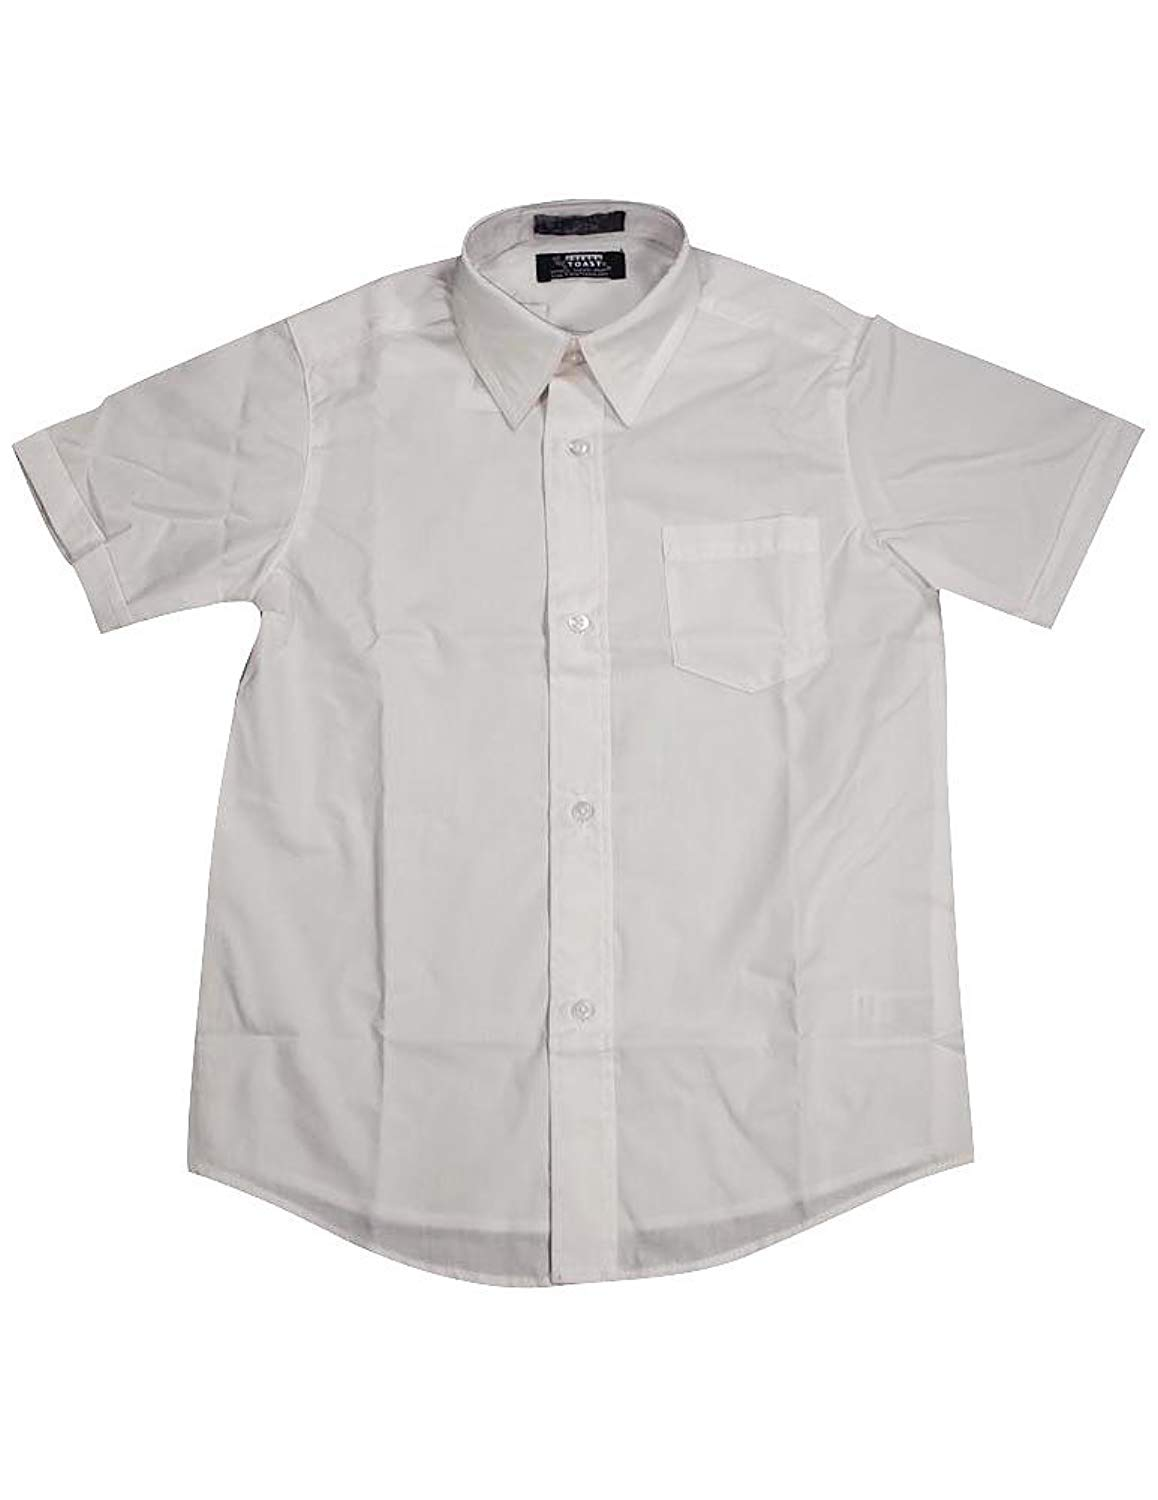 French Toast - Big Boys Short Sleeve Dress Shirt, White 33164-14